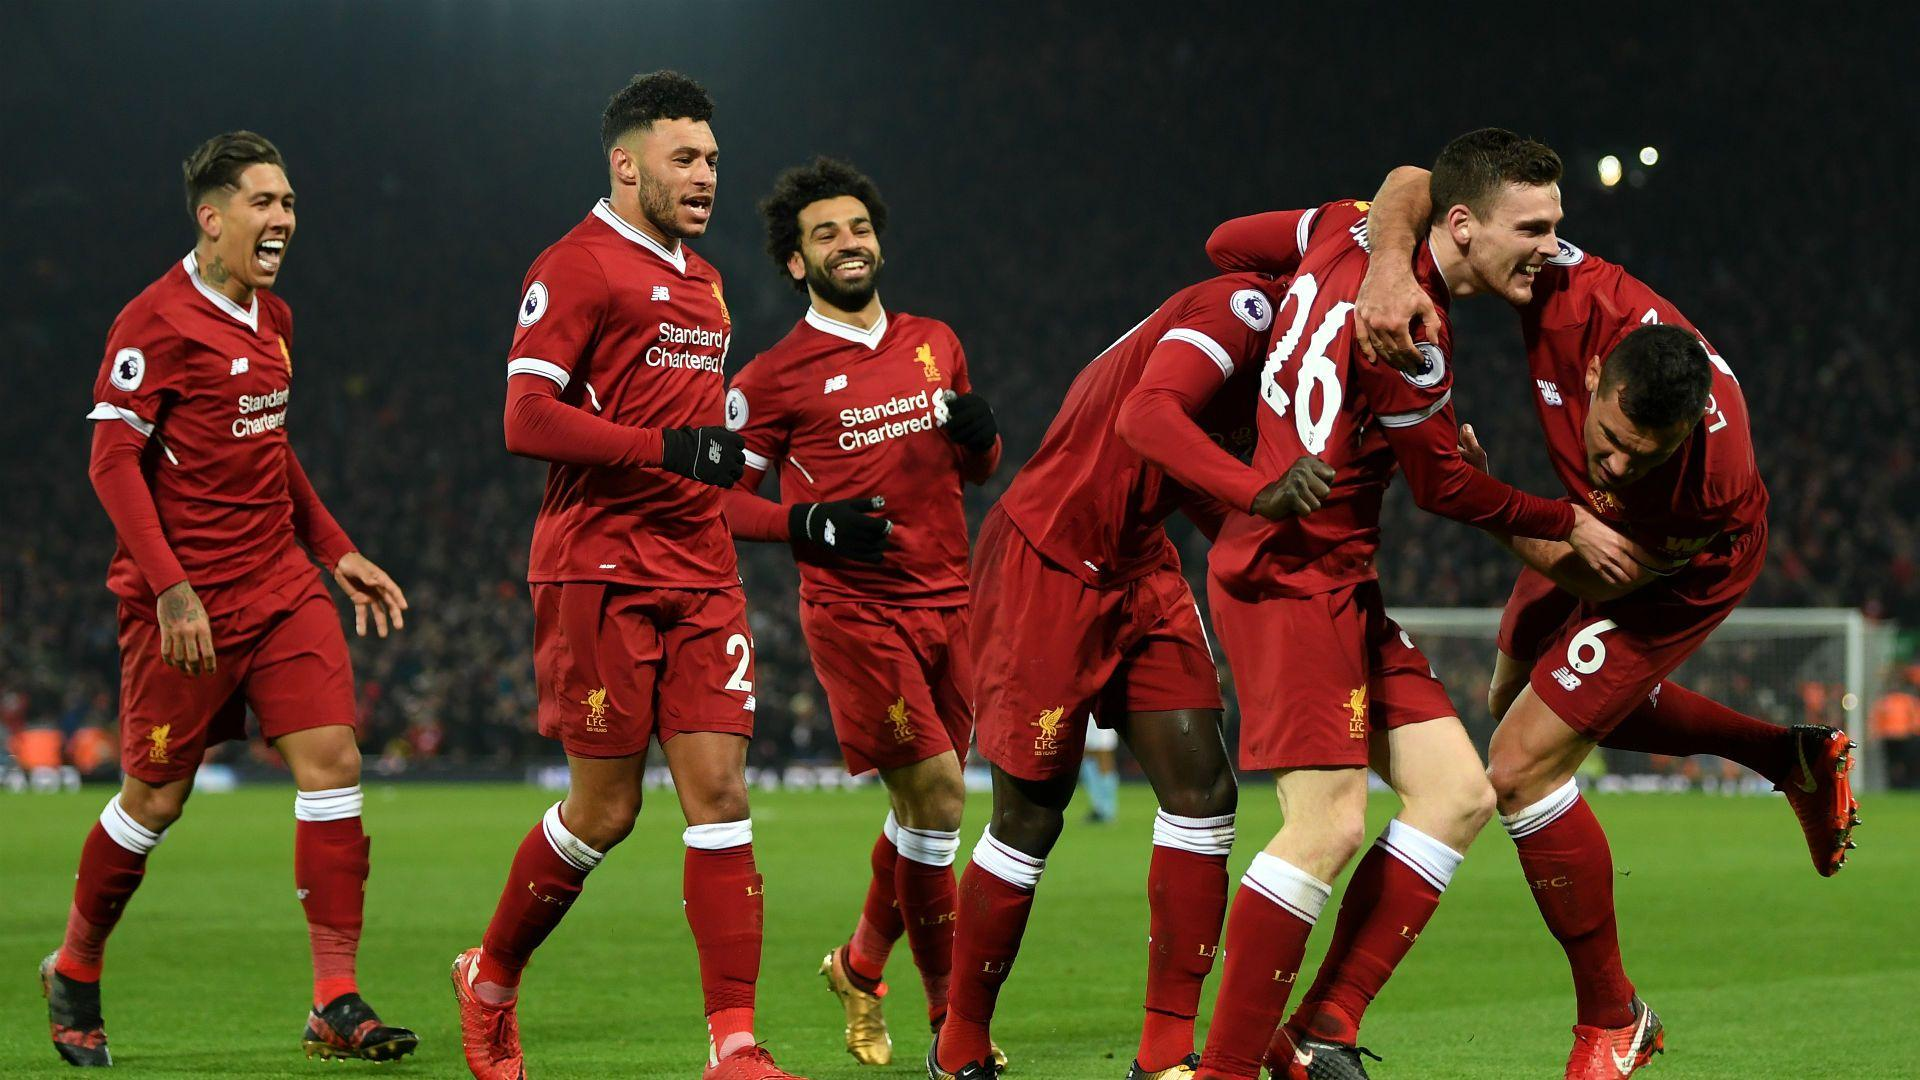 Top five contenders for the UEFA Champions League 2018-19